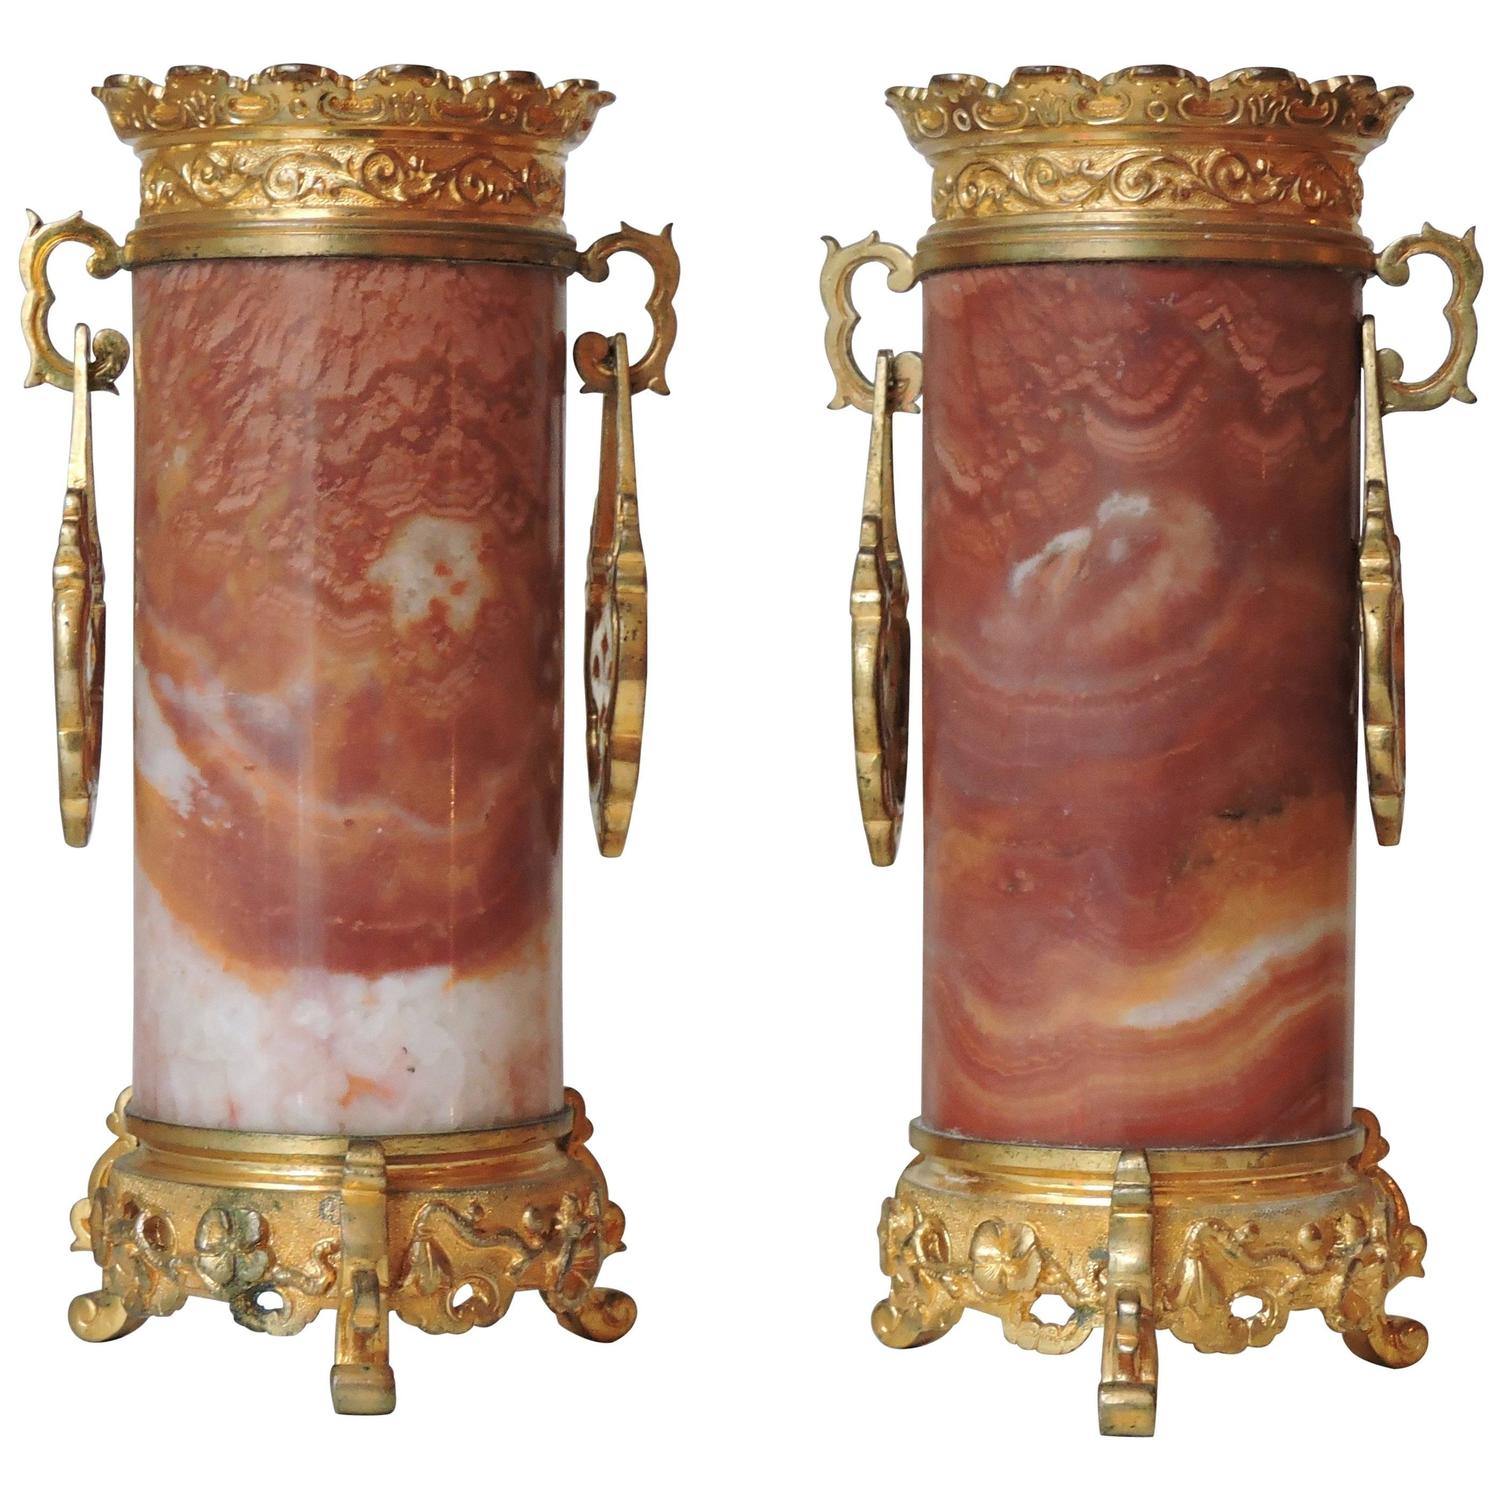 French japonisme ormolu and silvered bronze cut glass vase l pair of japonisme marble and ormolu vases in the style of edouard livre floridaeventfo Image collections